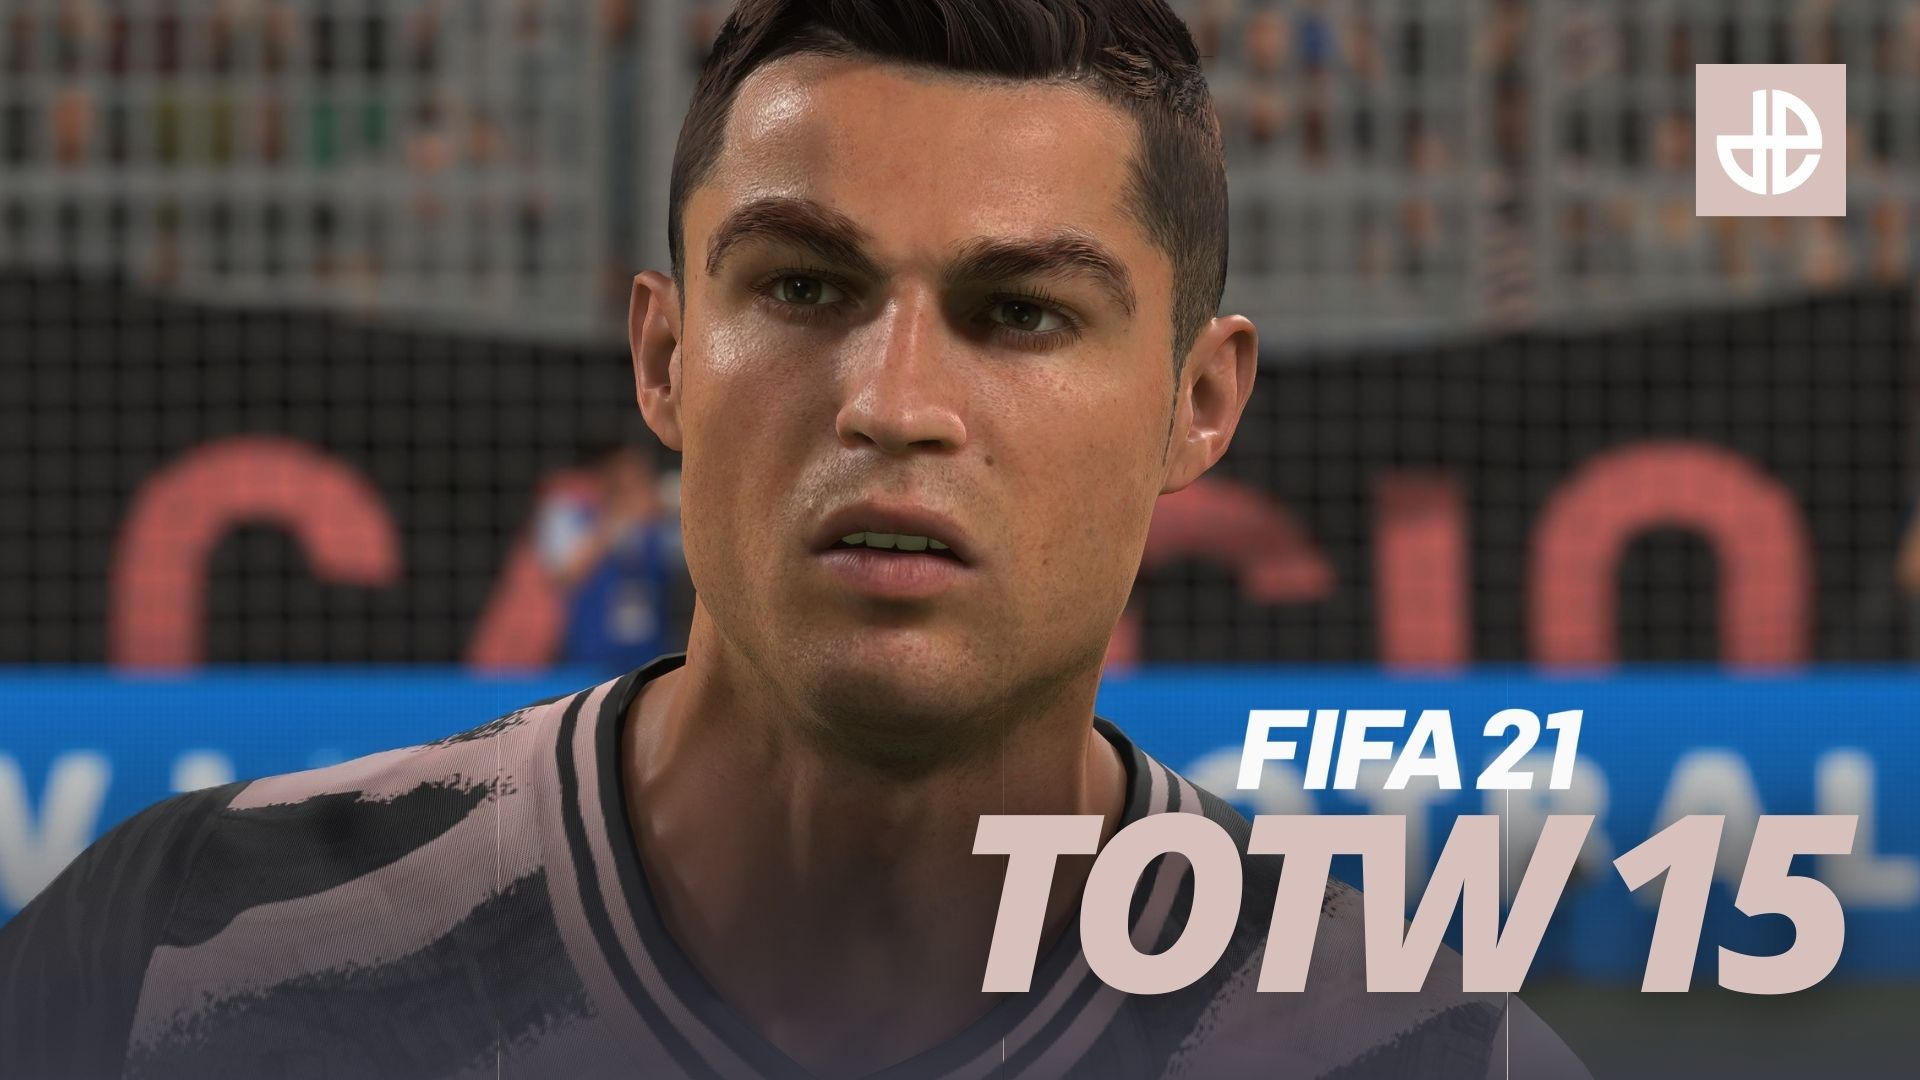 fifa 21 team of the week totw 15 ronaldo full team announced predictions leaks